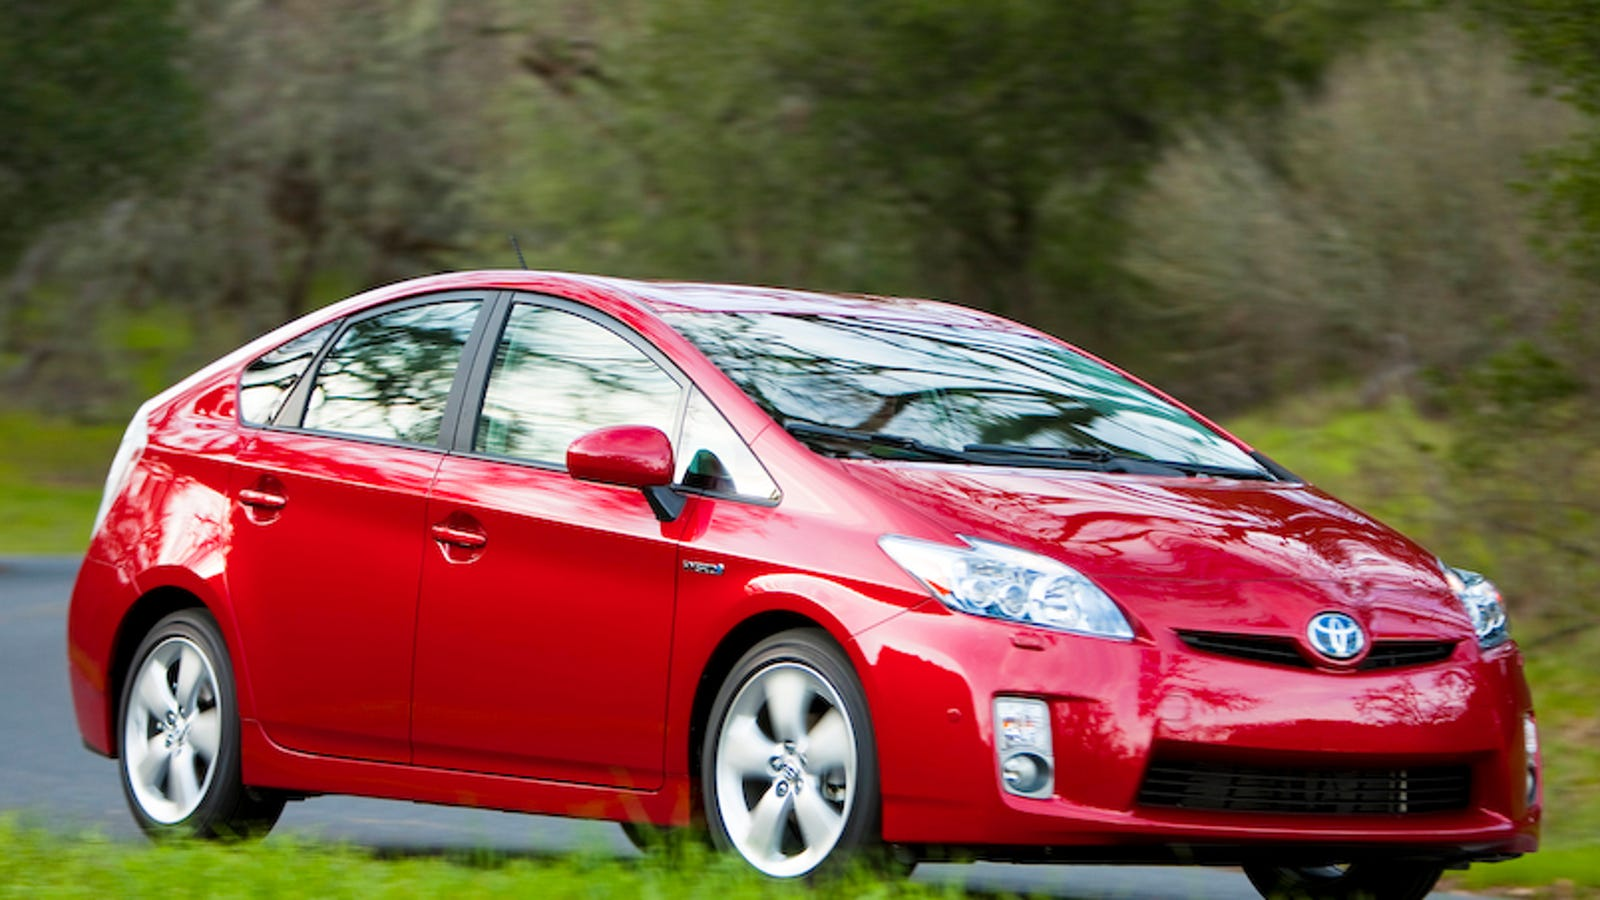 2010 Prius For Sale >> 2010 Toyota Prius: First Drive